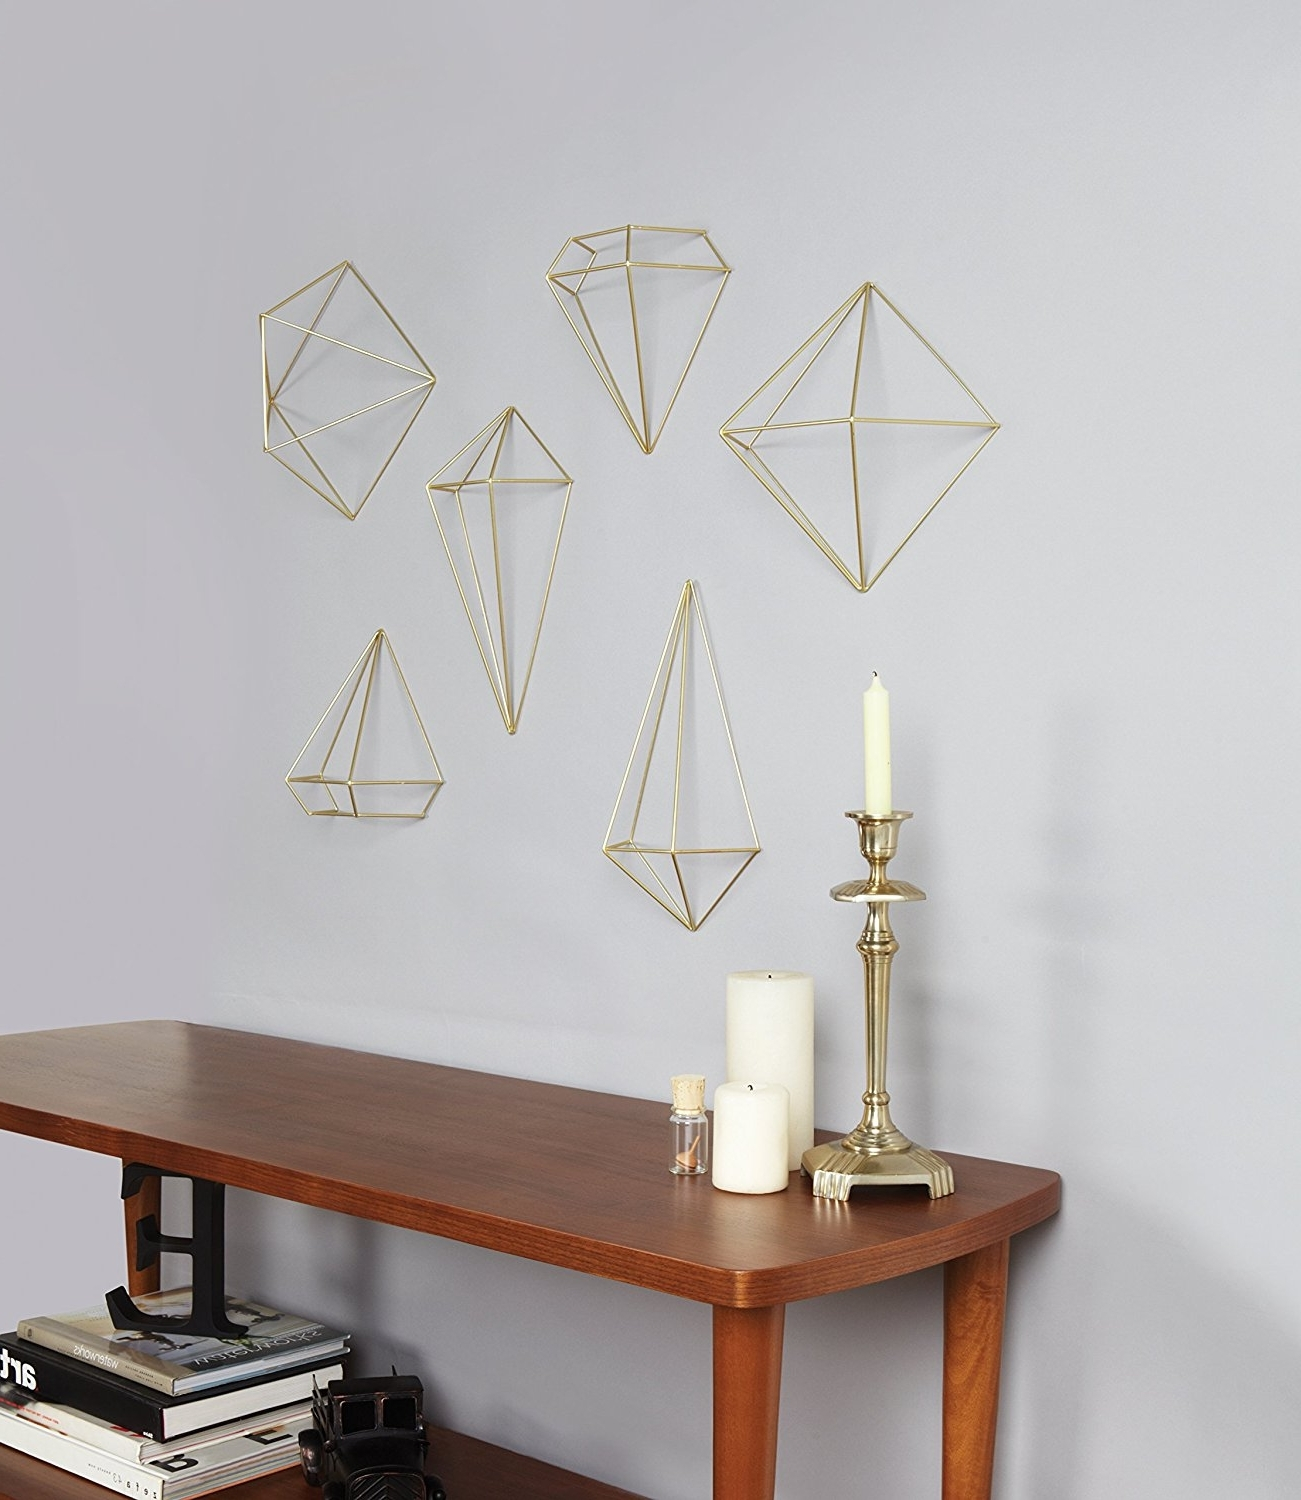 Amazon: Umbra Prisma Decorative Accents, Set Of 6, Brass: Home With Regard To Famous Geometric Shapes Wall Accents (View 10 of 15)